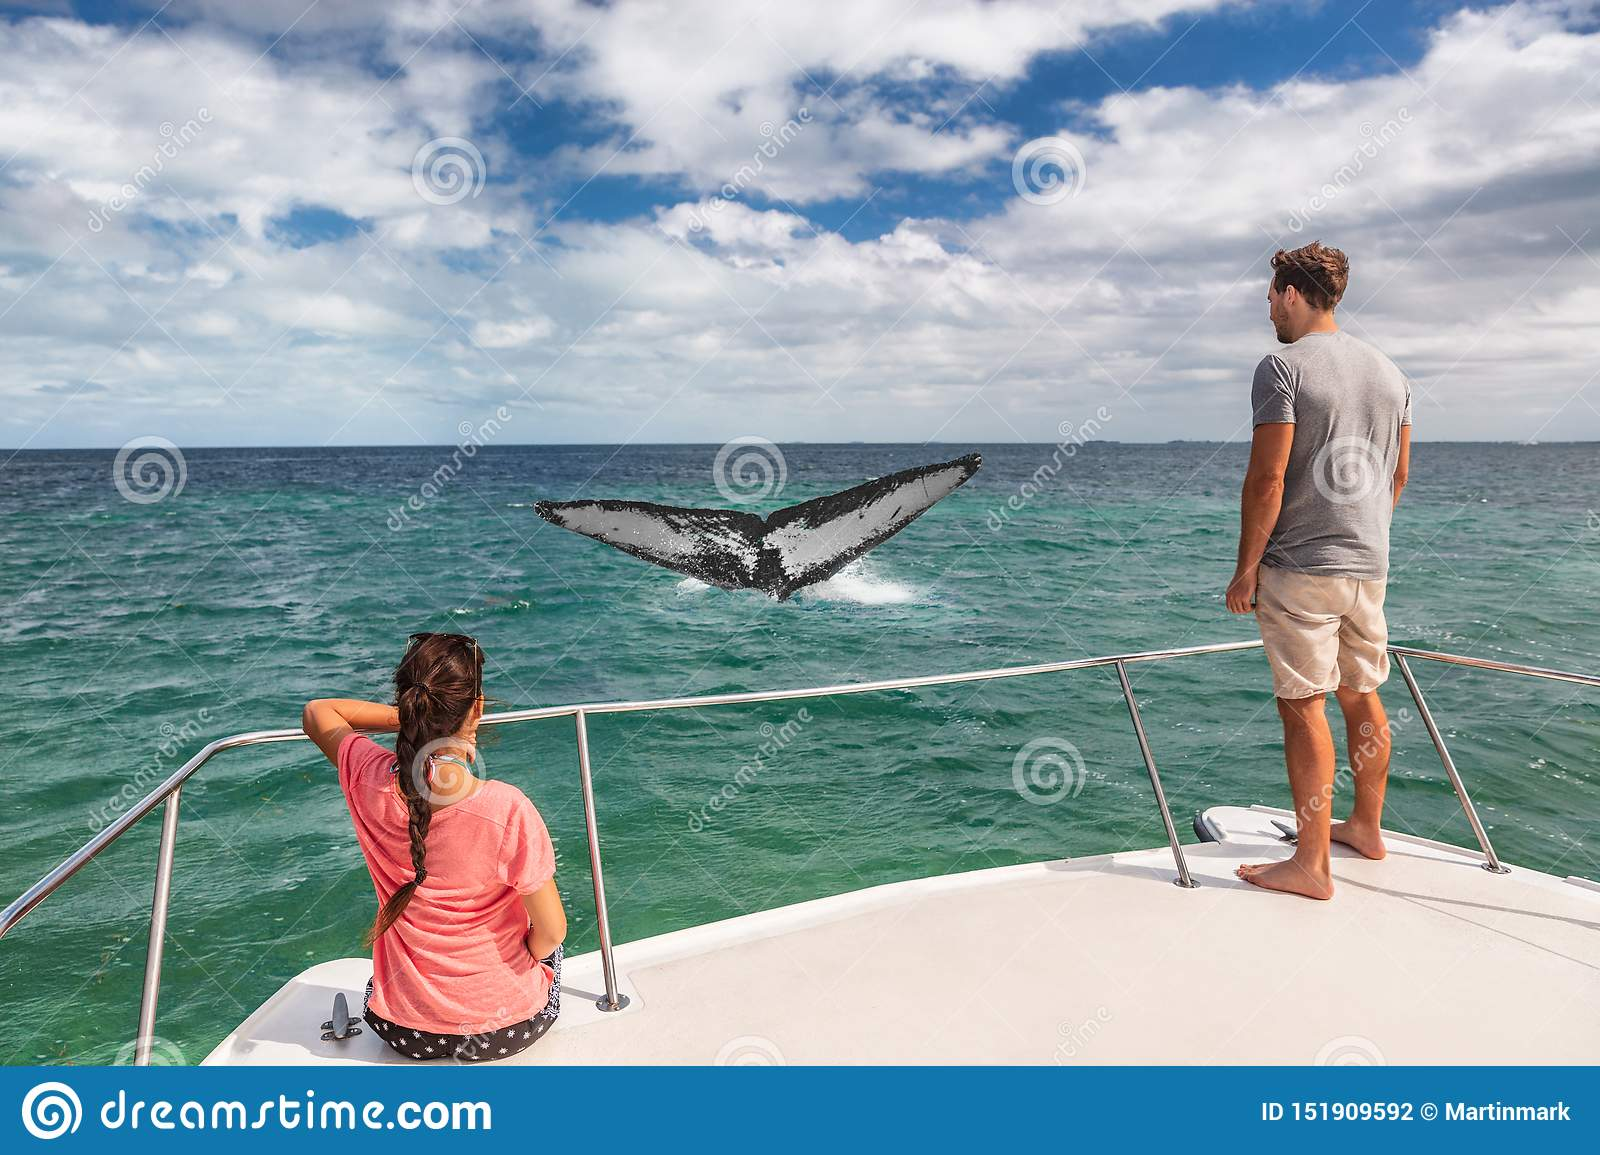 Whale watching boat tour tourists people on ship looking at humpback tail breaching ocean in tropical destination, summer travel